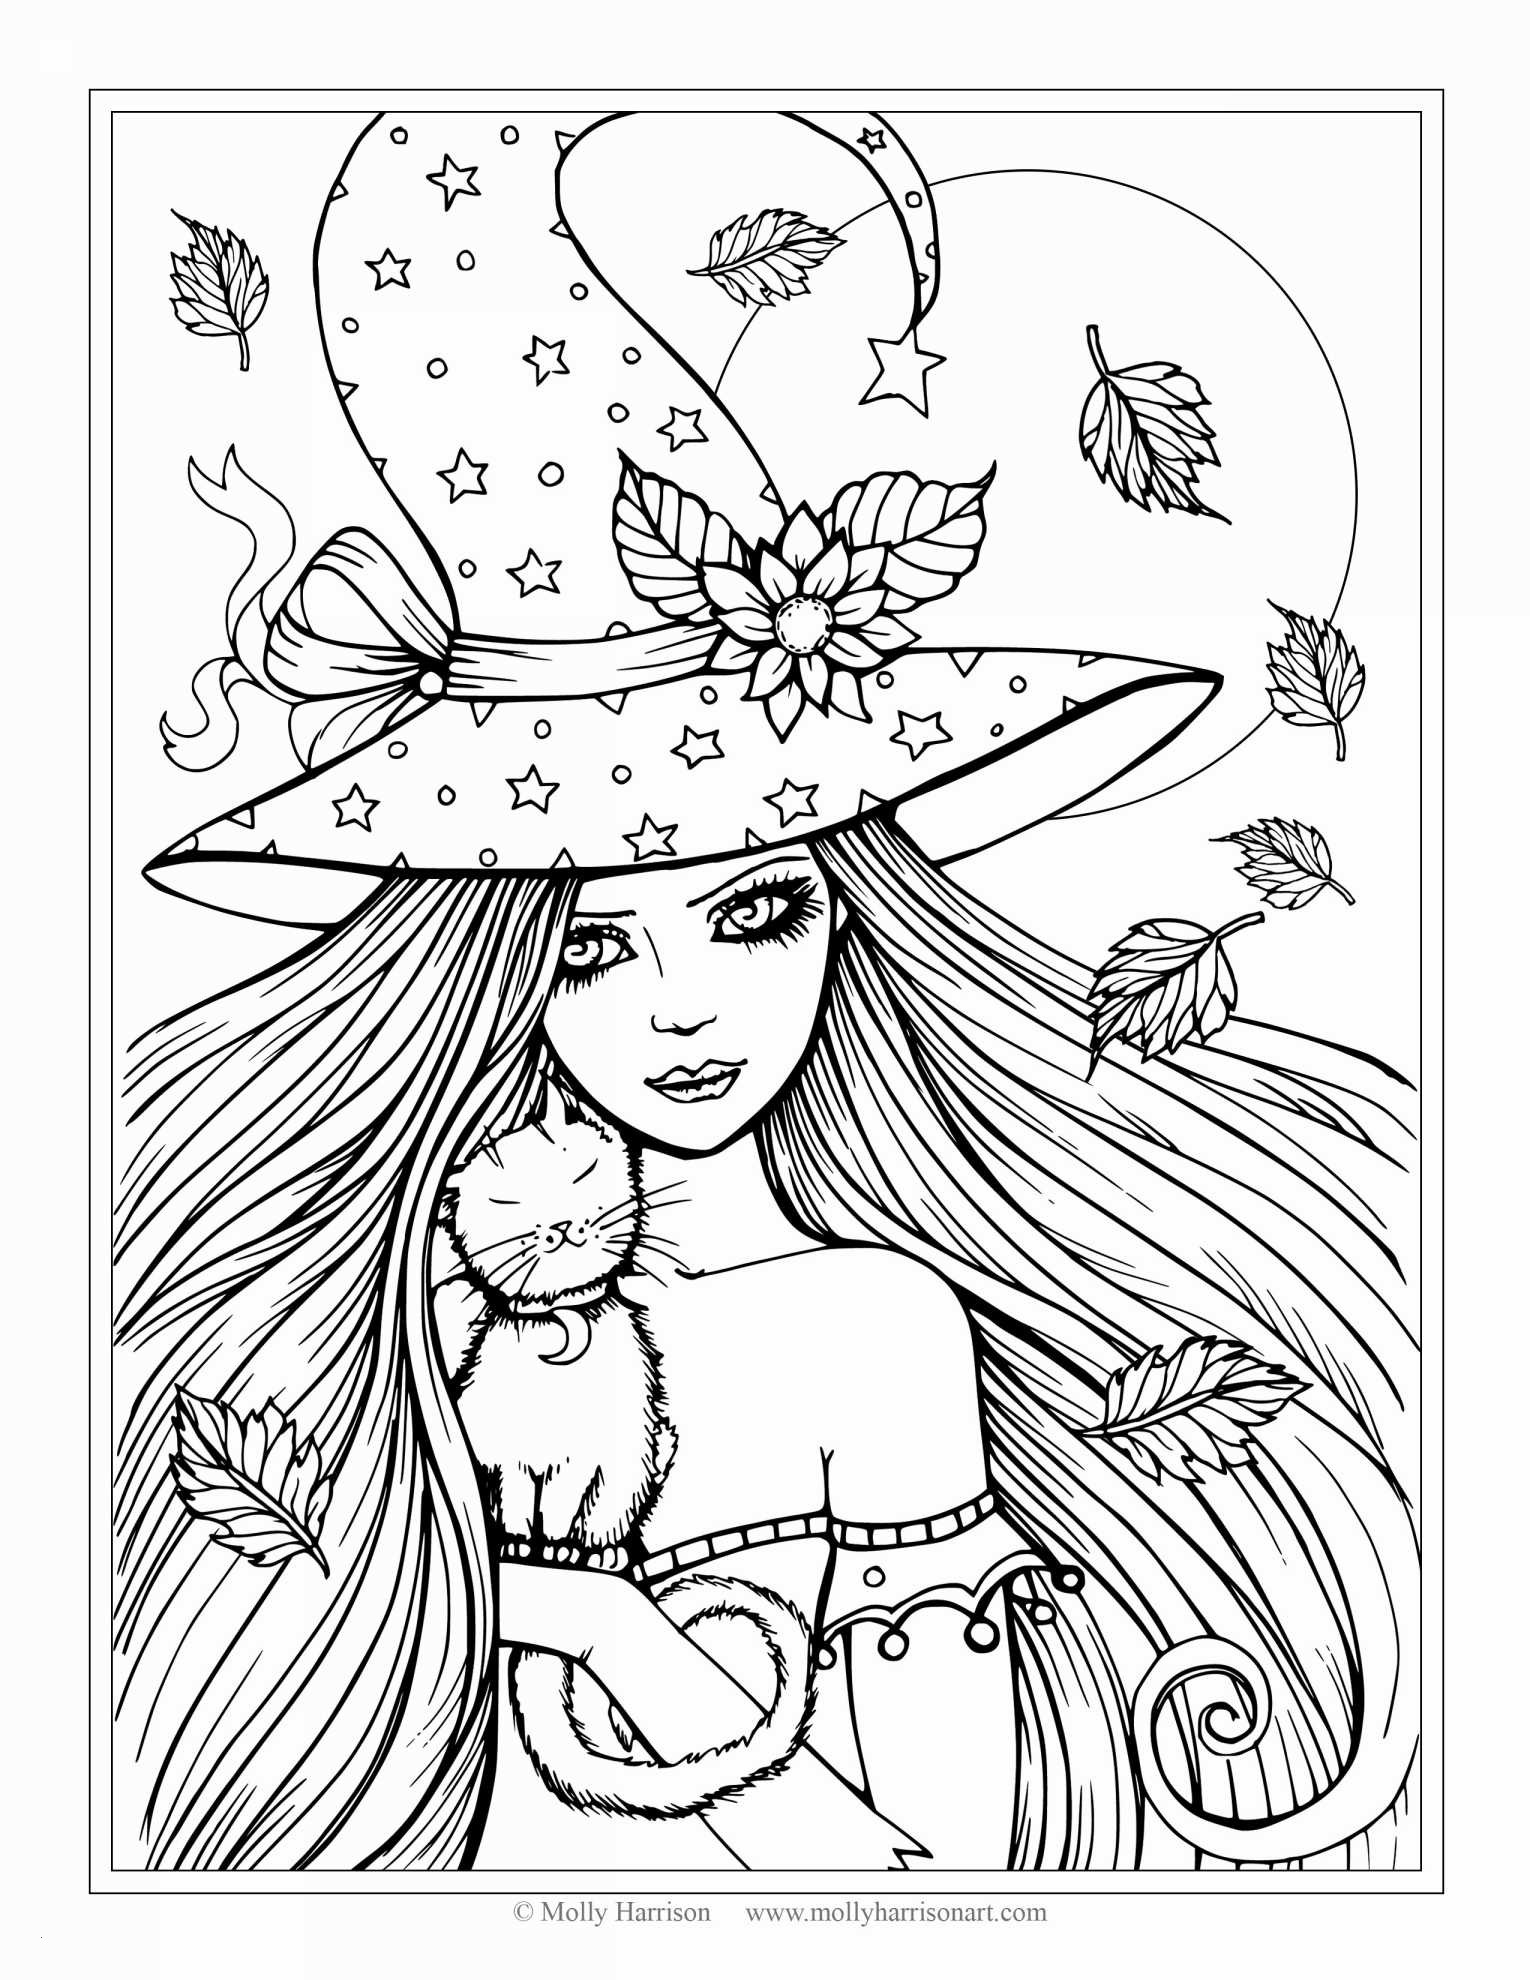 Lego Christmas Coloring Pages With Free Cards 21csb